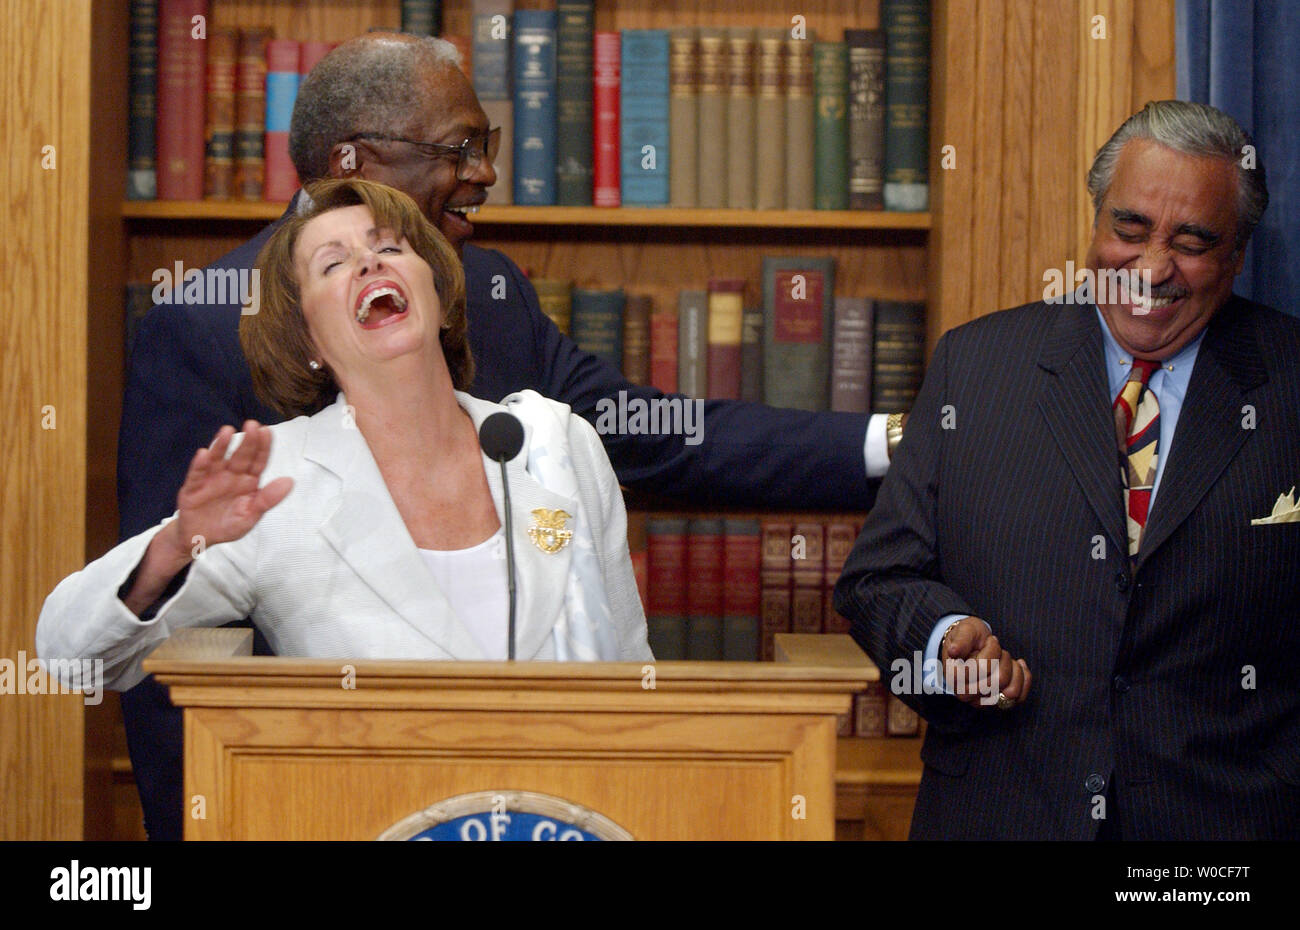 Democratic Reps. Nancy Pelosi, Calif., James Clyburn, N.C., and Charles  Rangel, N.Y., left to right, laugh hysterically after Rangel joked about  the possible price of Depends during a news conference to warn